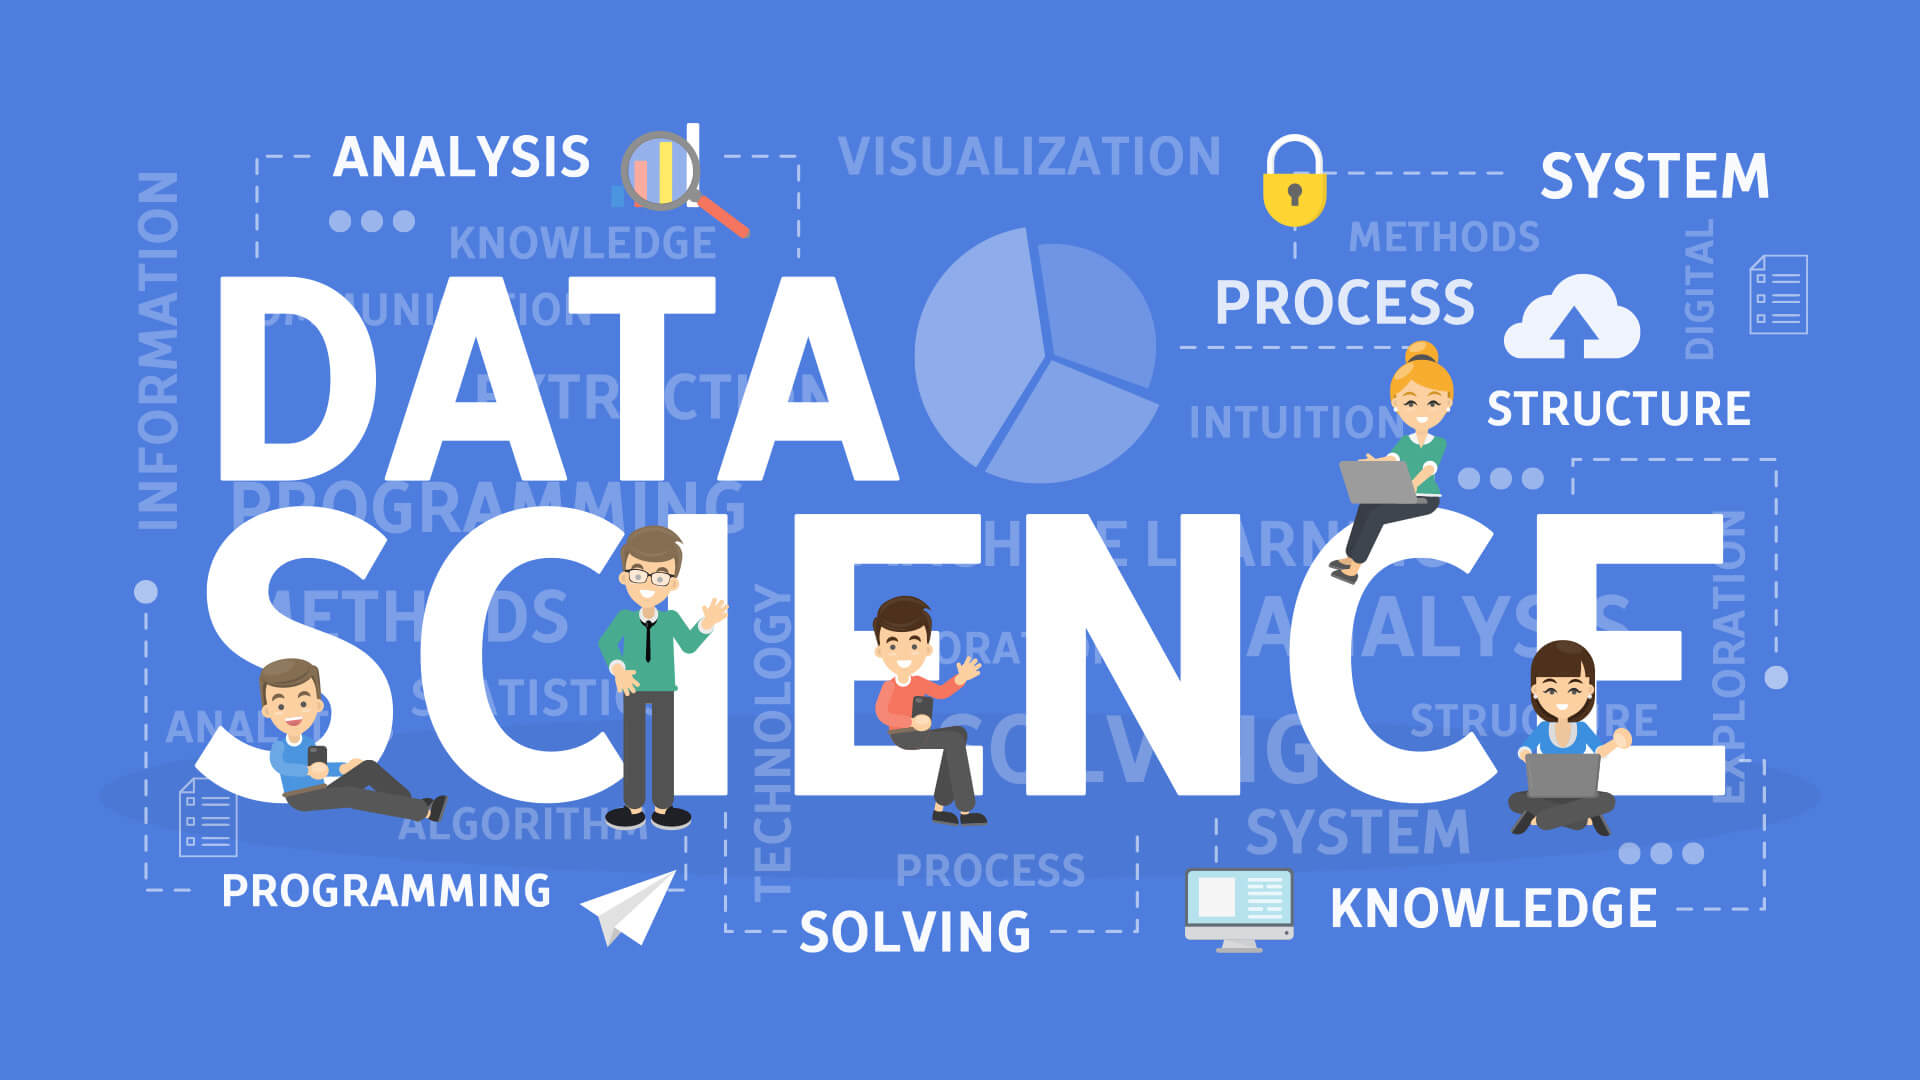 Should Data Science be considered as its own discipline? - The Data  Scientist